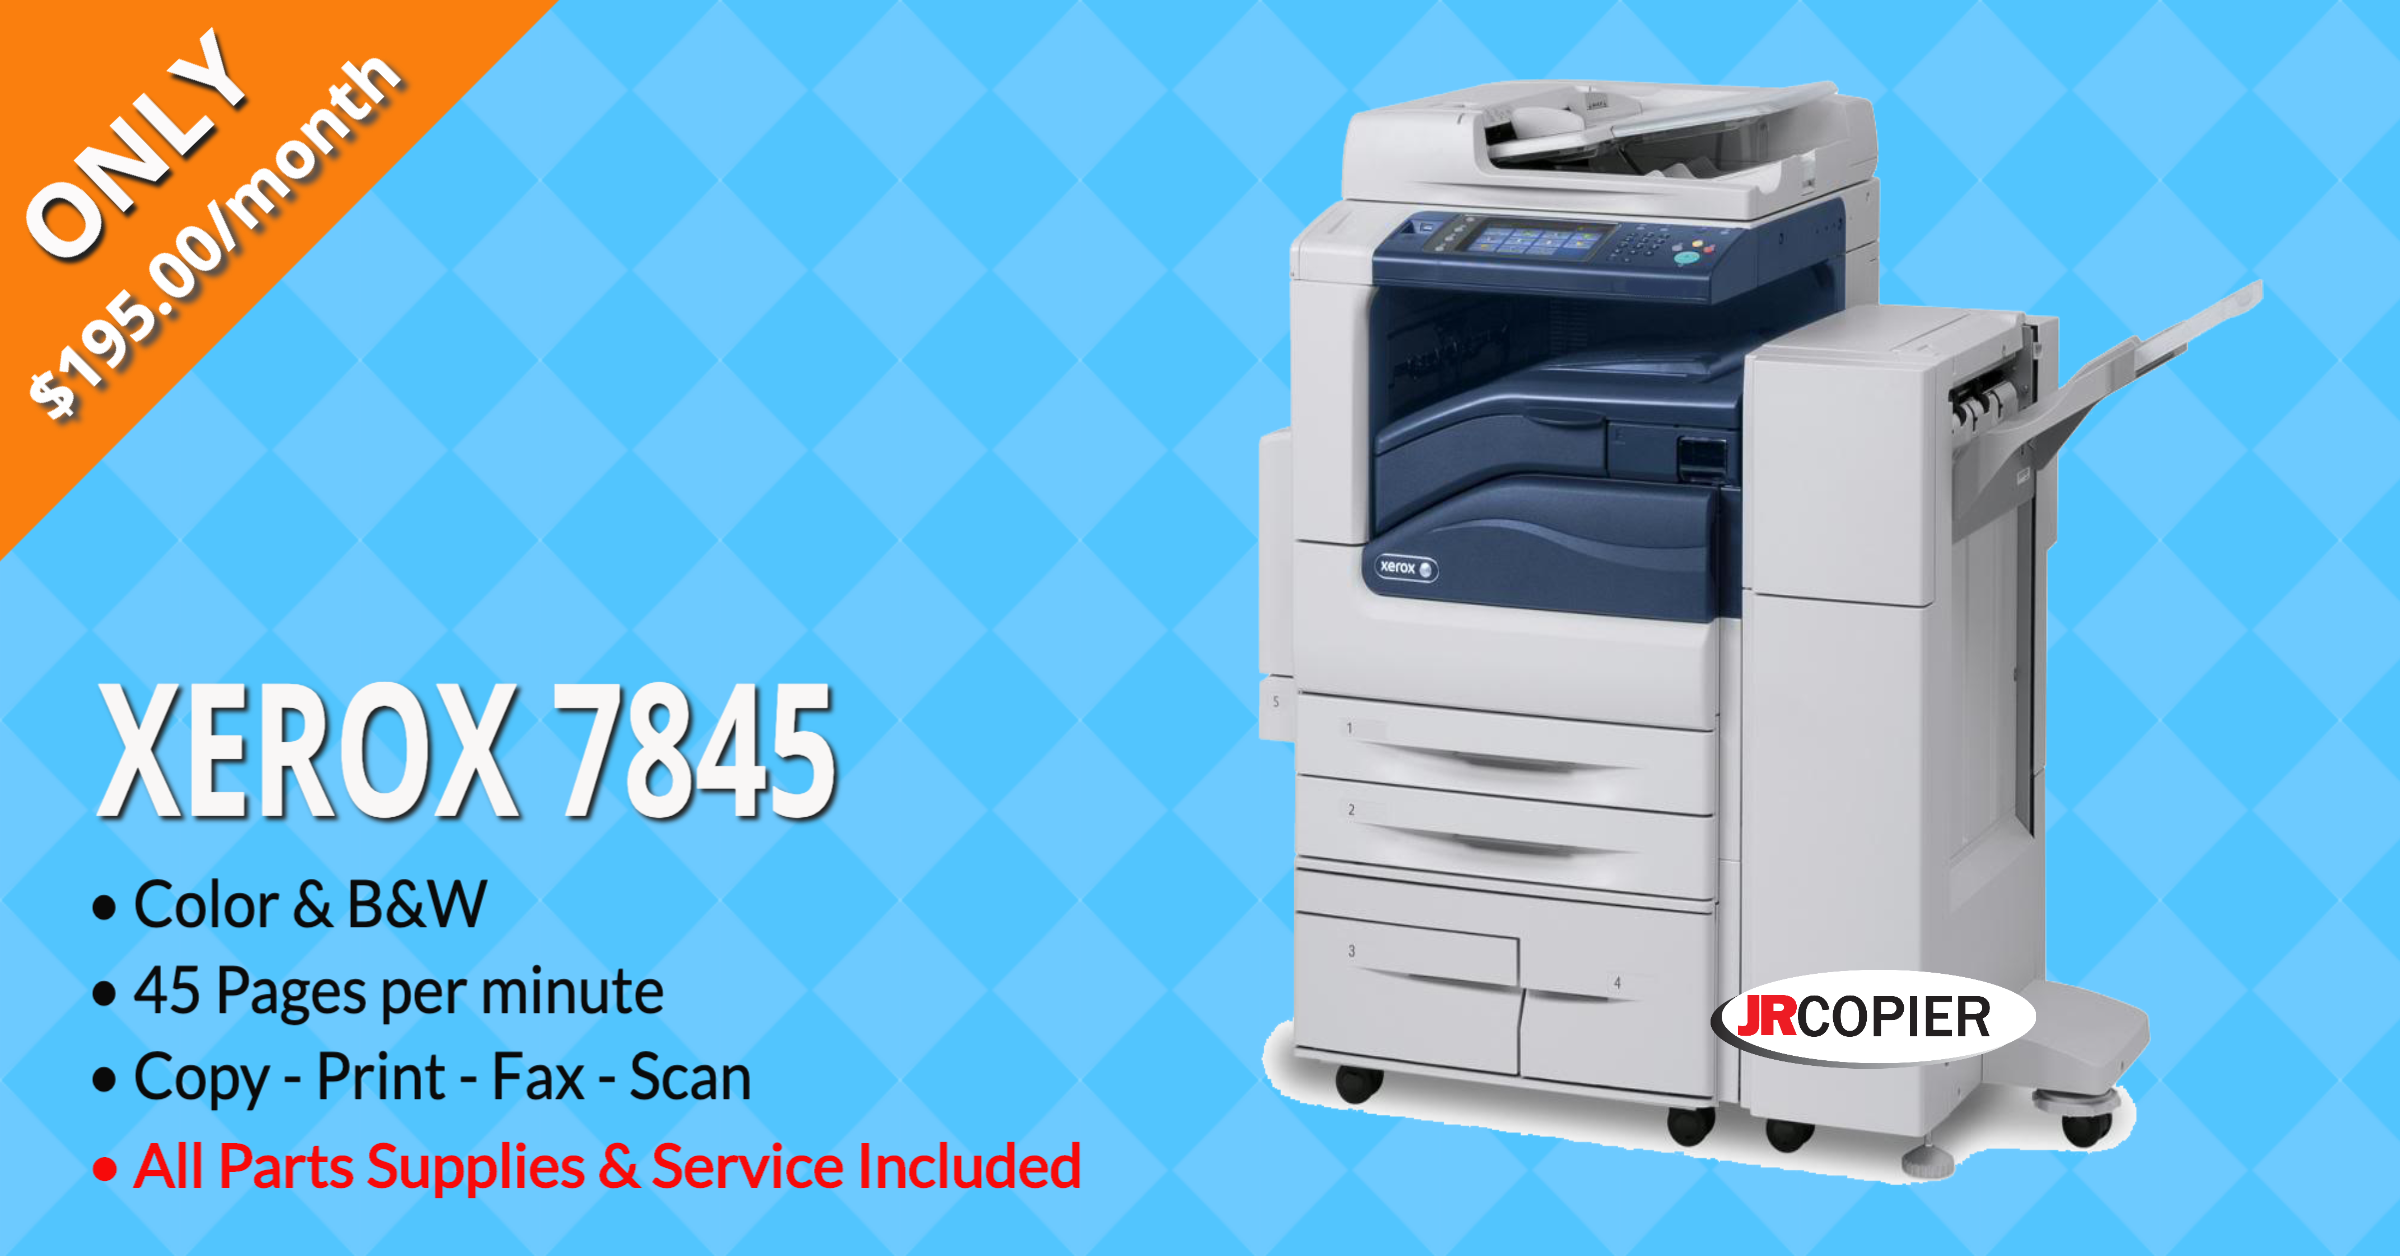 Color Copier 30269, 30270, 30276